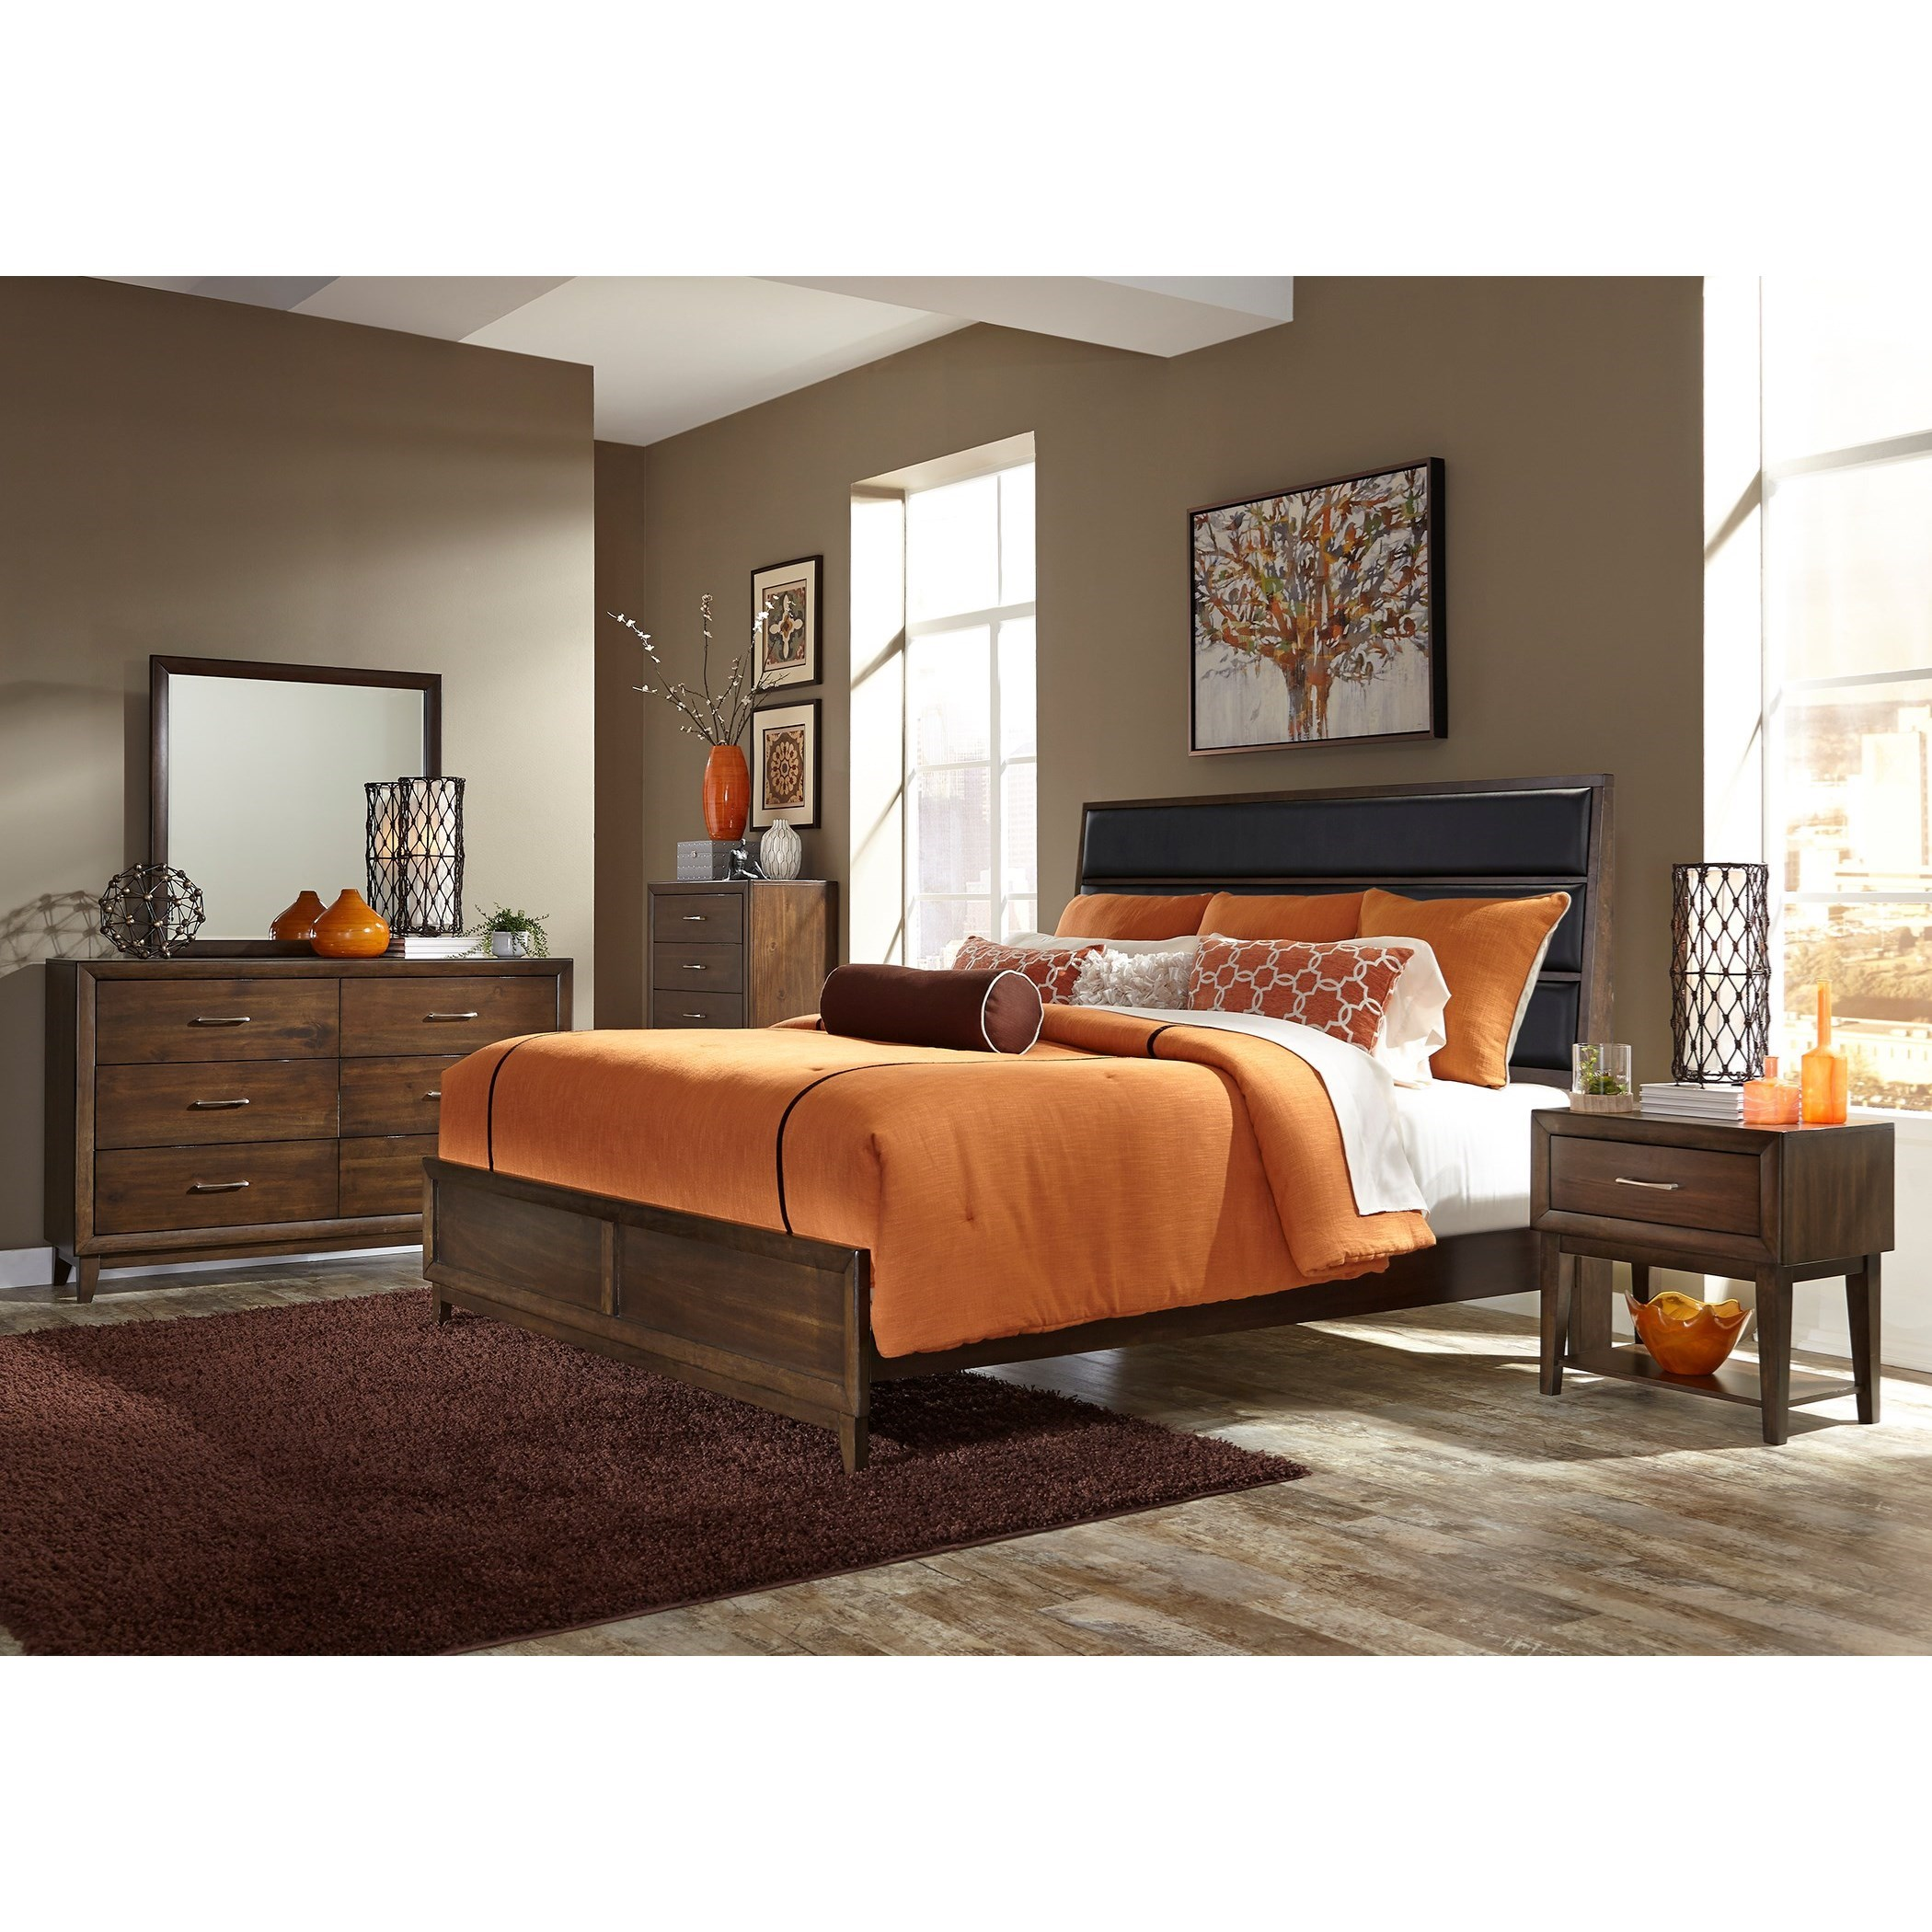 liberty furniture hudson square bedroom queen bedroom group hudson 39 s